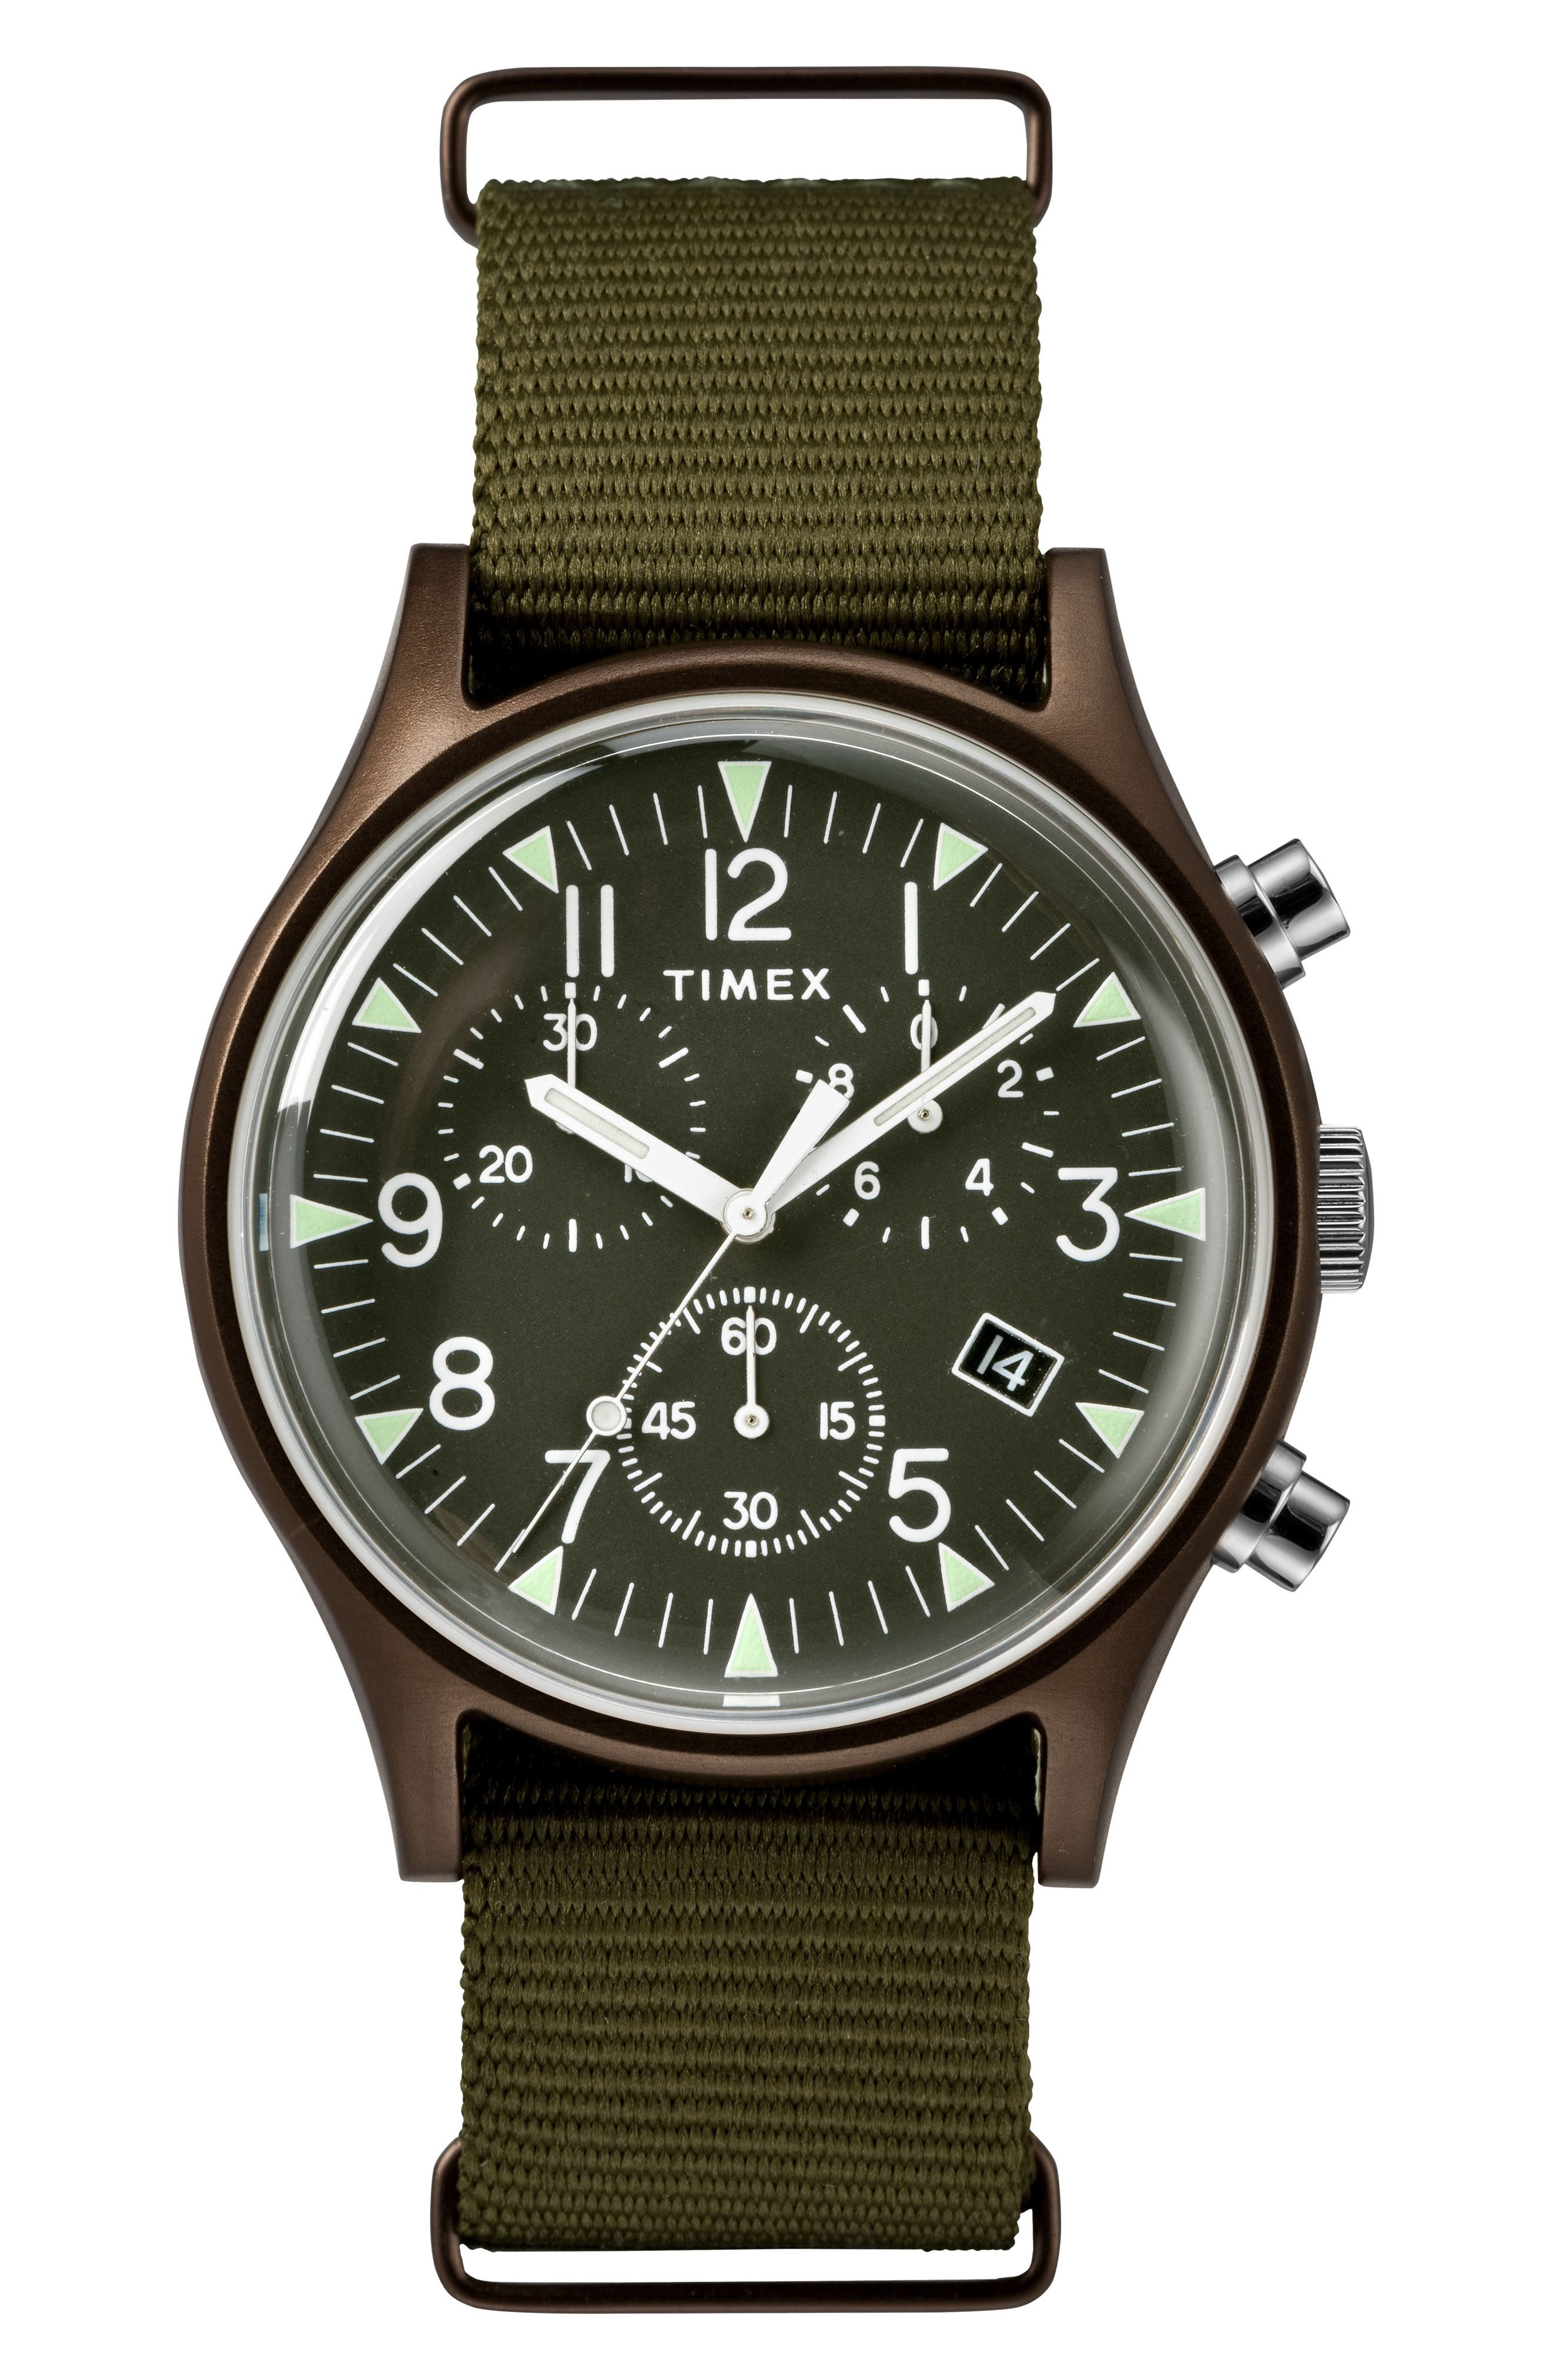 MK1 Chronograph Nylon Strap Watch,                             Main thumbnail 1, color,                             Olive